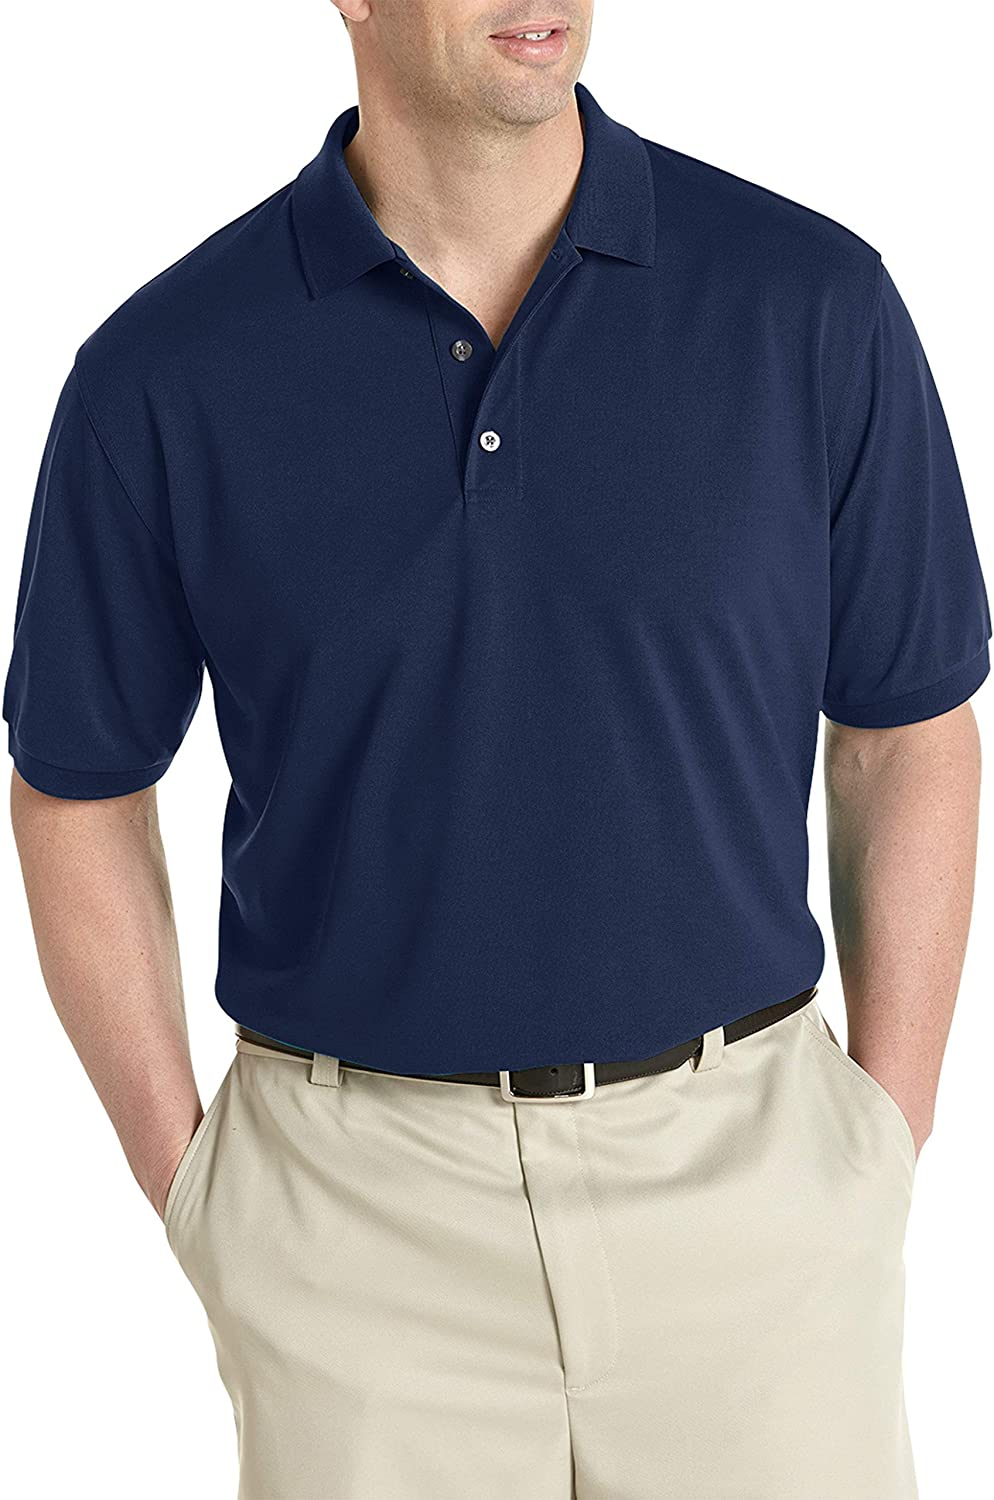 Oak Hill by DXL Big and Tall Performance Polo Shirt